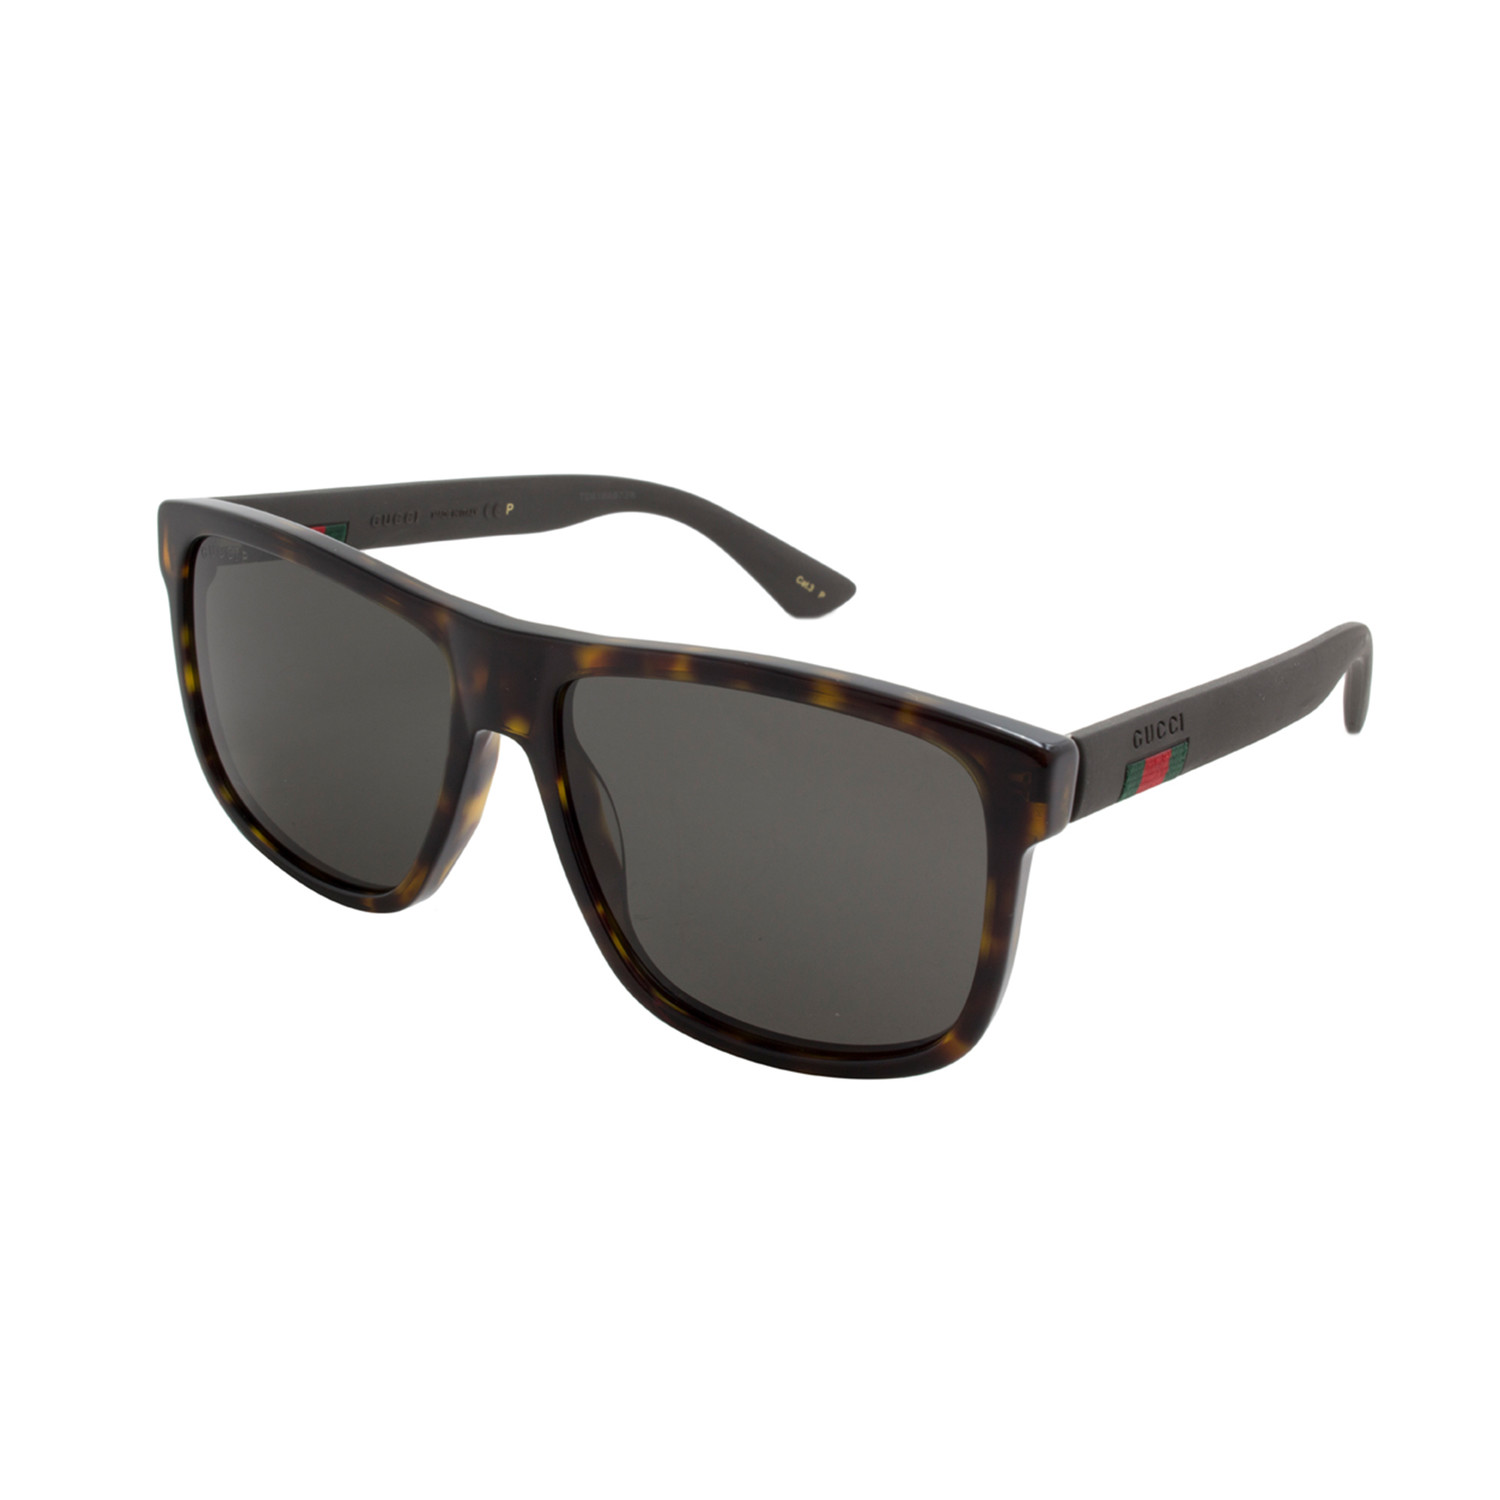 f6839613772 Gucci    Men s GG0010S-003 58 Sunglasses    Polarized - Gucci   Dior ...